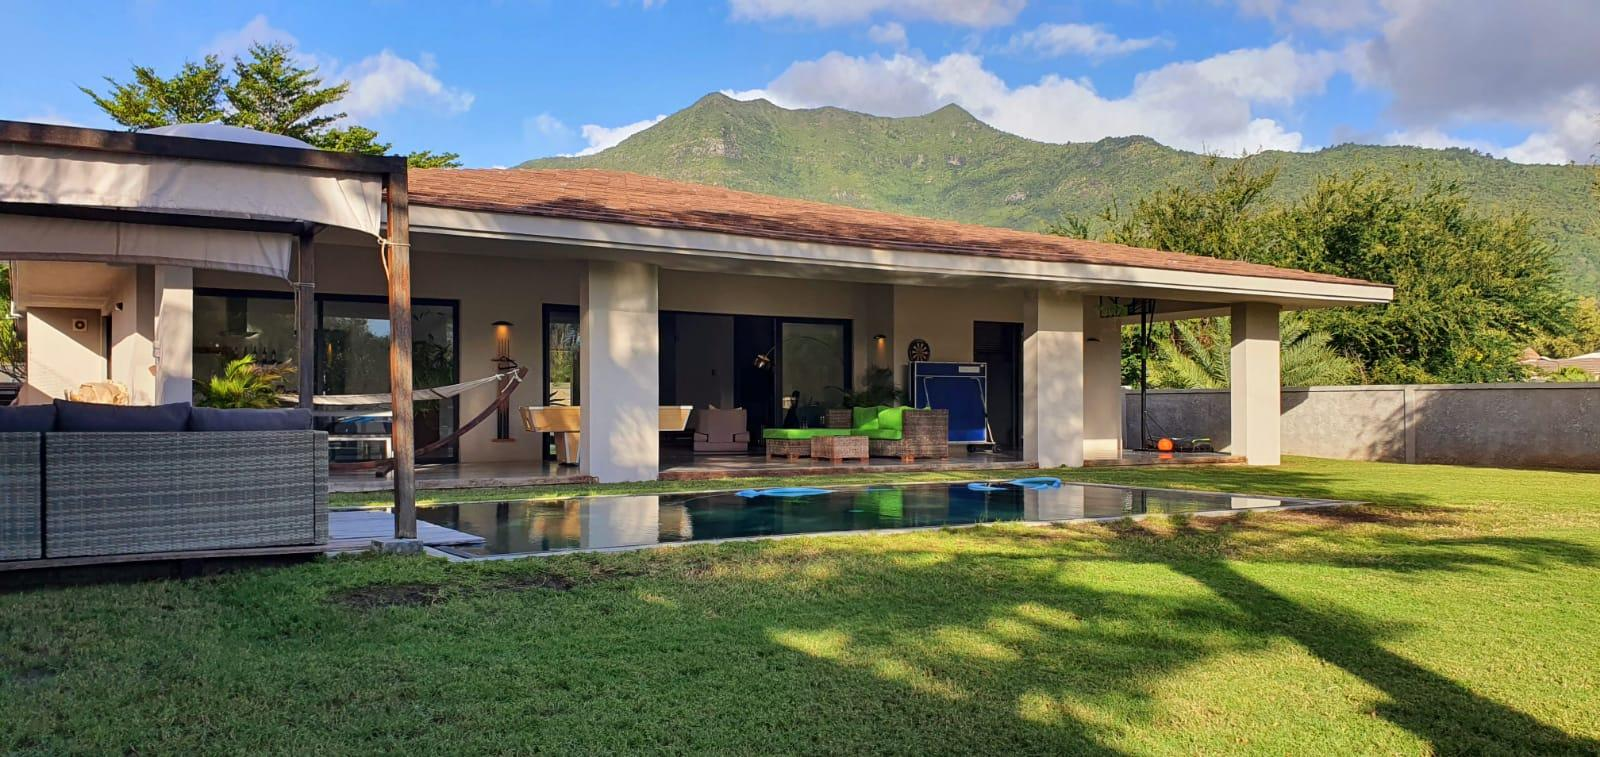 FOR SALE – Magnificent single storey villa furnished and equipped of 321 m2 on a land of 314 toises located in a gated community in Petite Rivière Noire